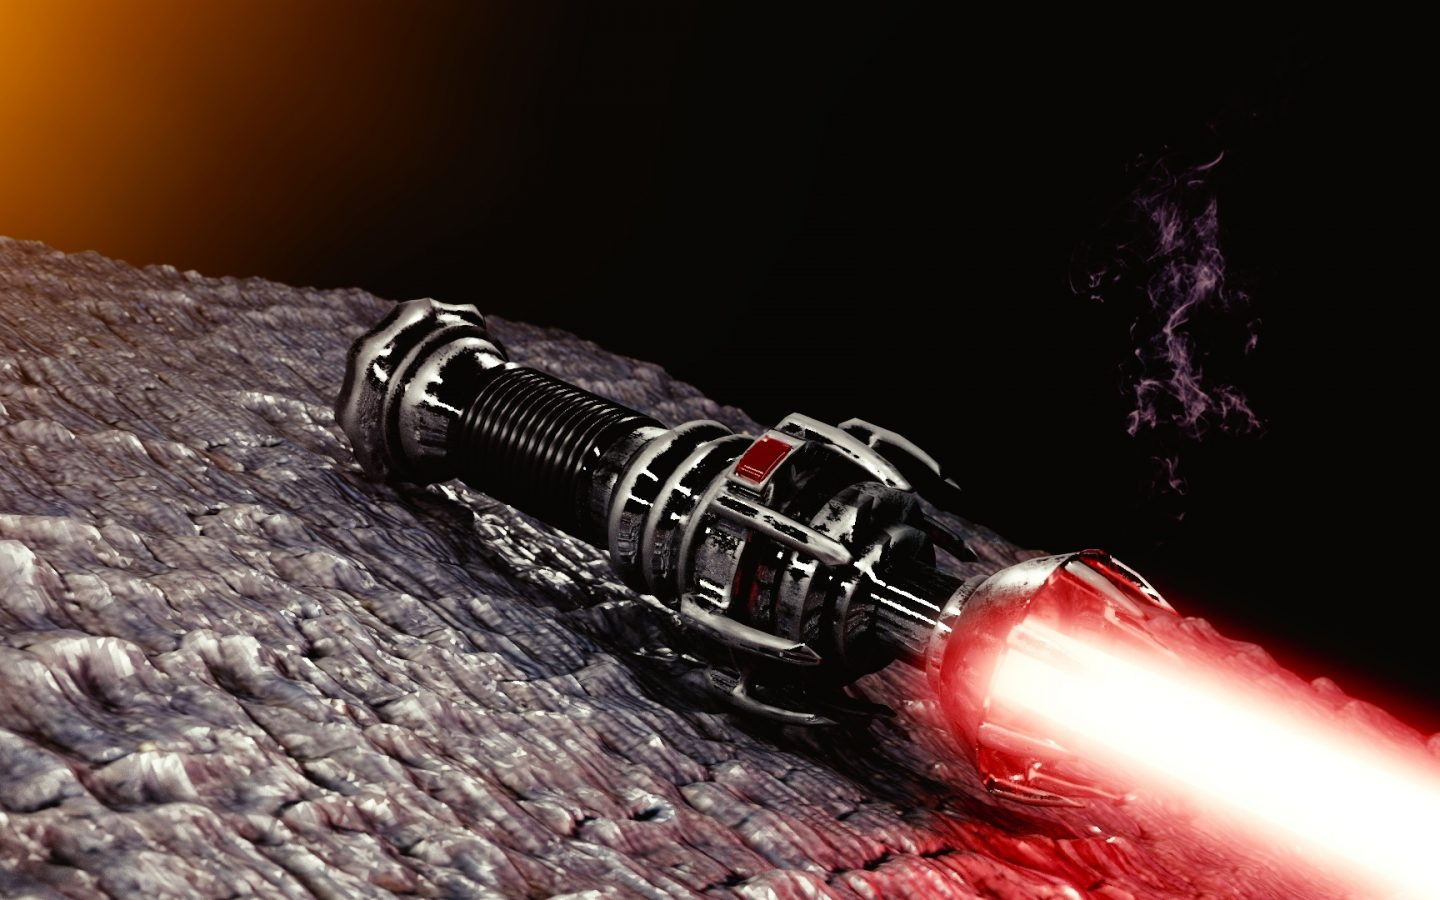 3d Cute Wallpaper Free Download Star Wars Sith Lightsaber Hd Wallpaper